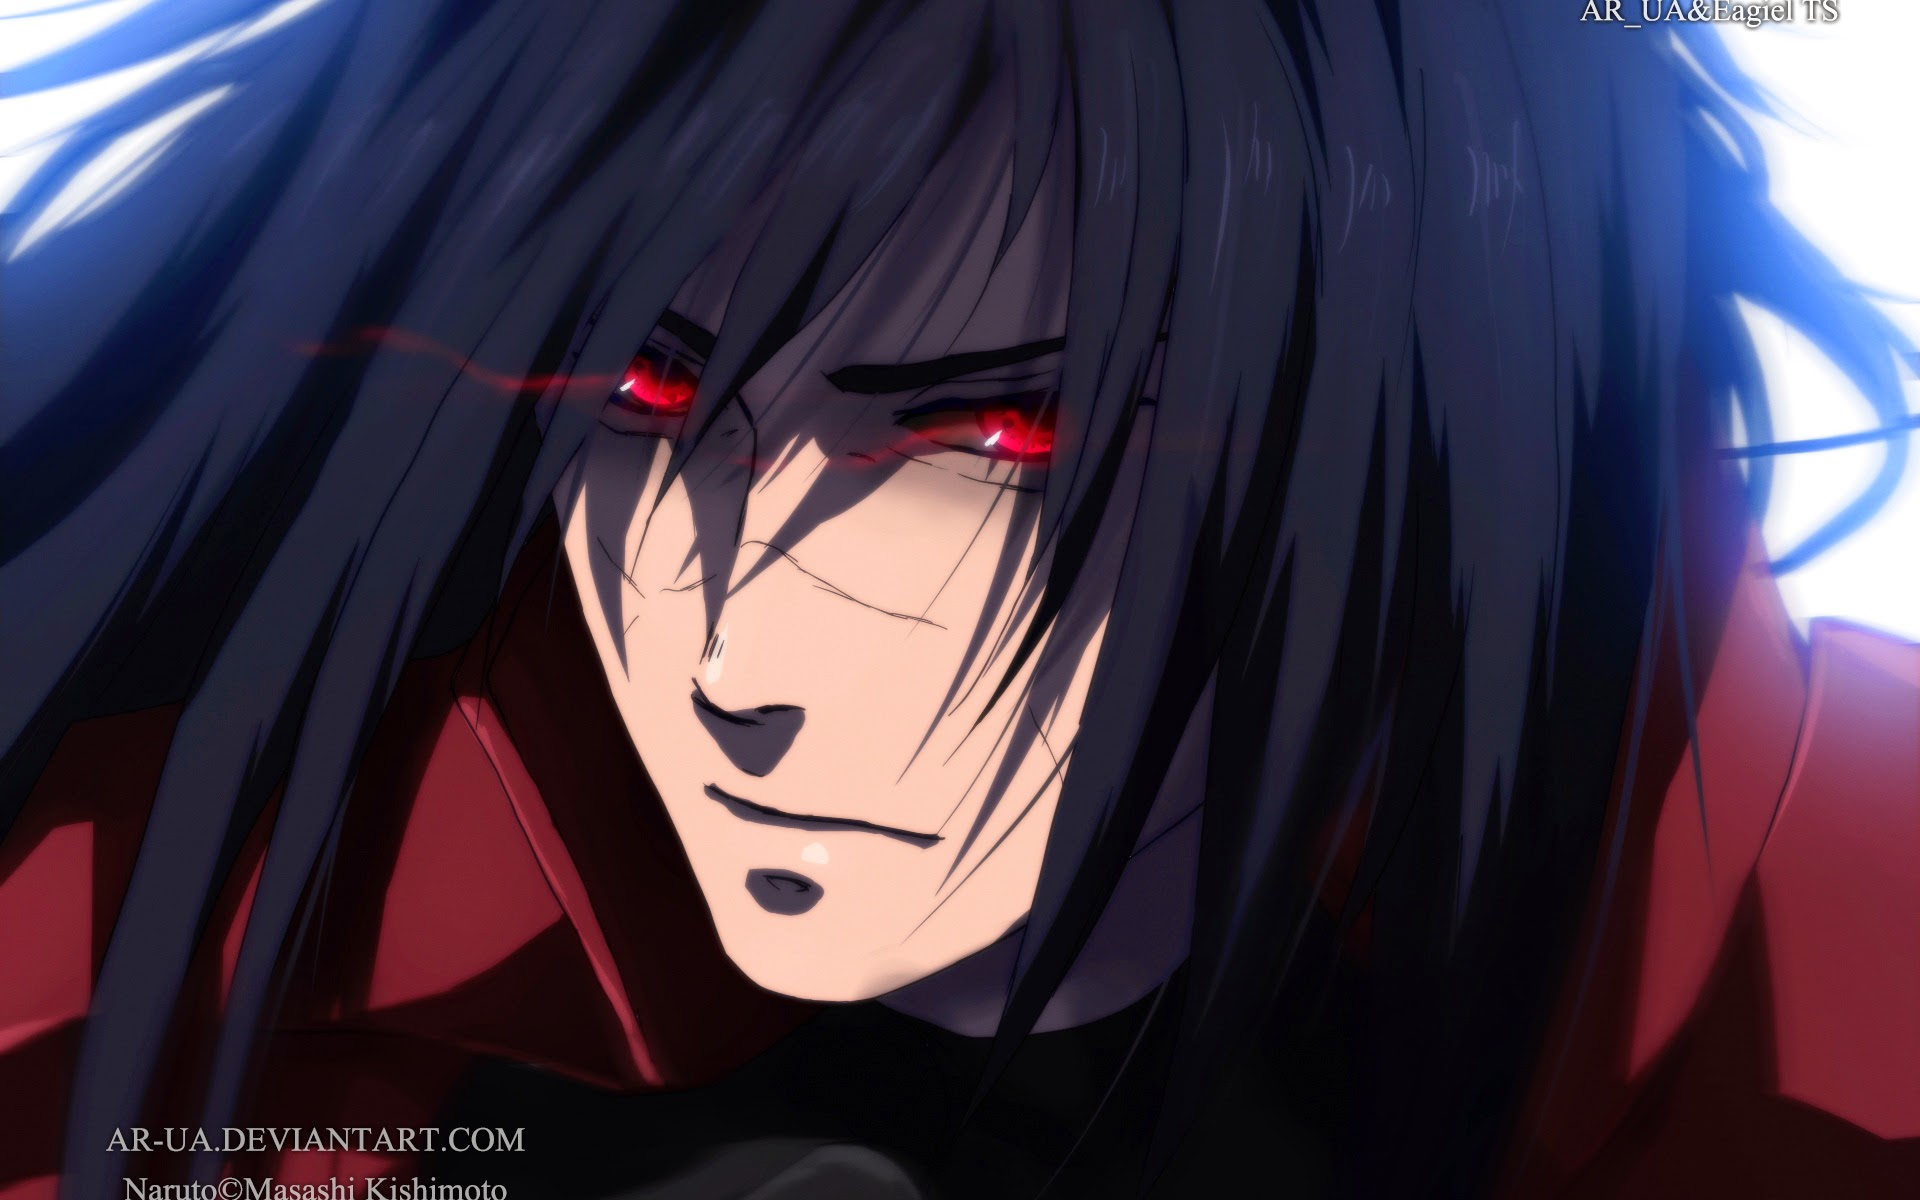 madara uchiha sharingan eyes hd wallpaper 1920x1200 72 Madara Uchiha Sharingan